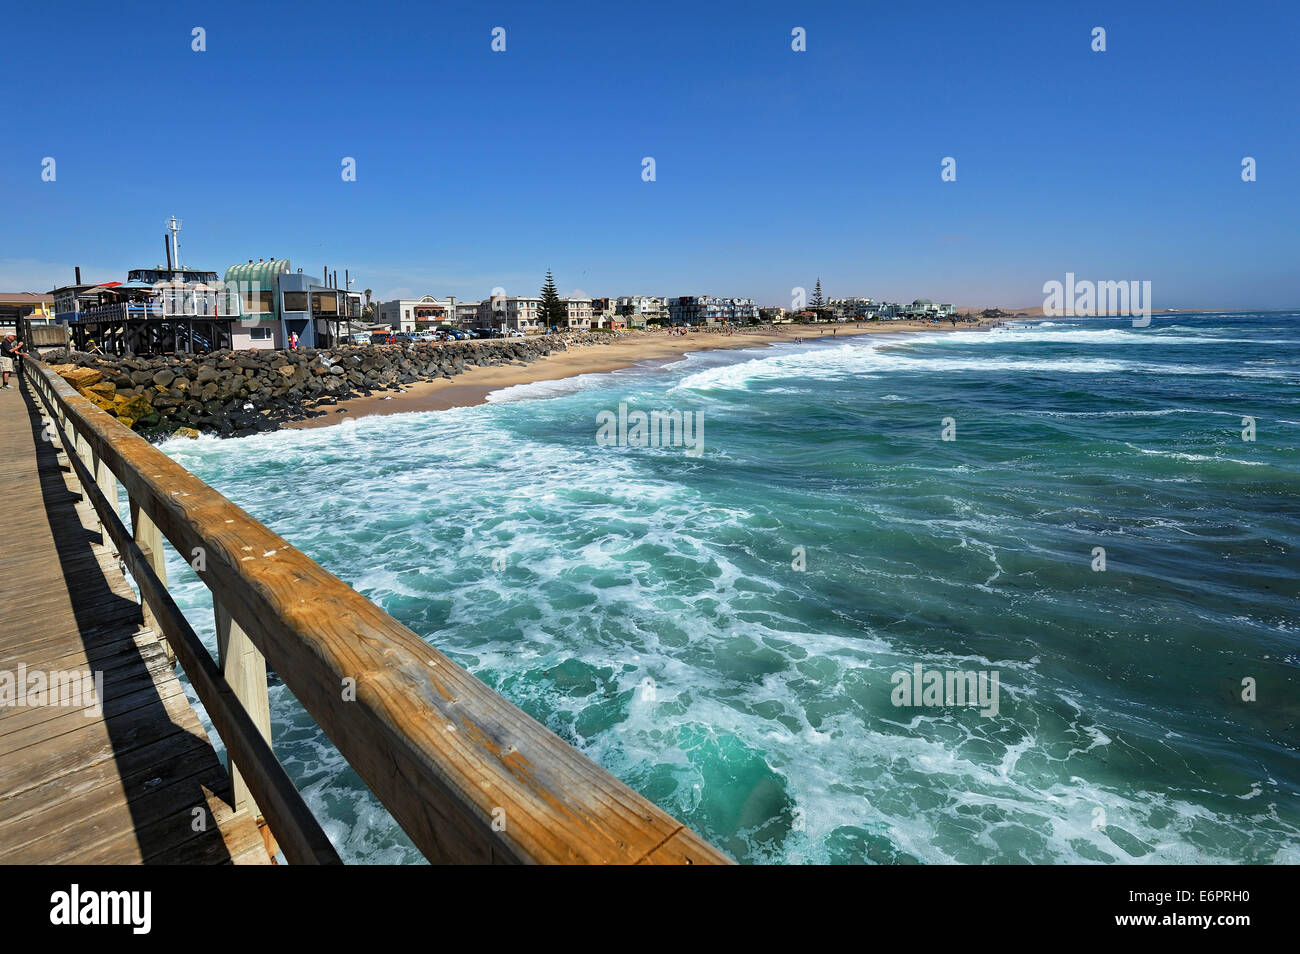 Wooden jetty and beach, Swakopmund, Namibia - Stock Image